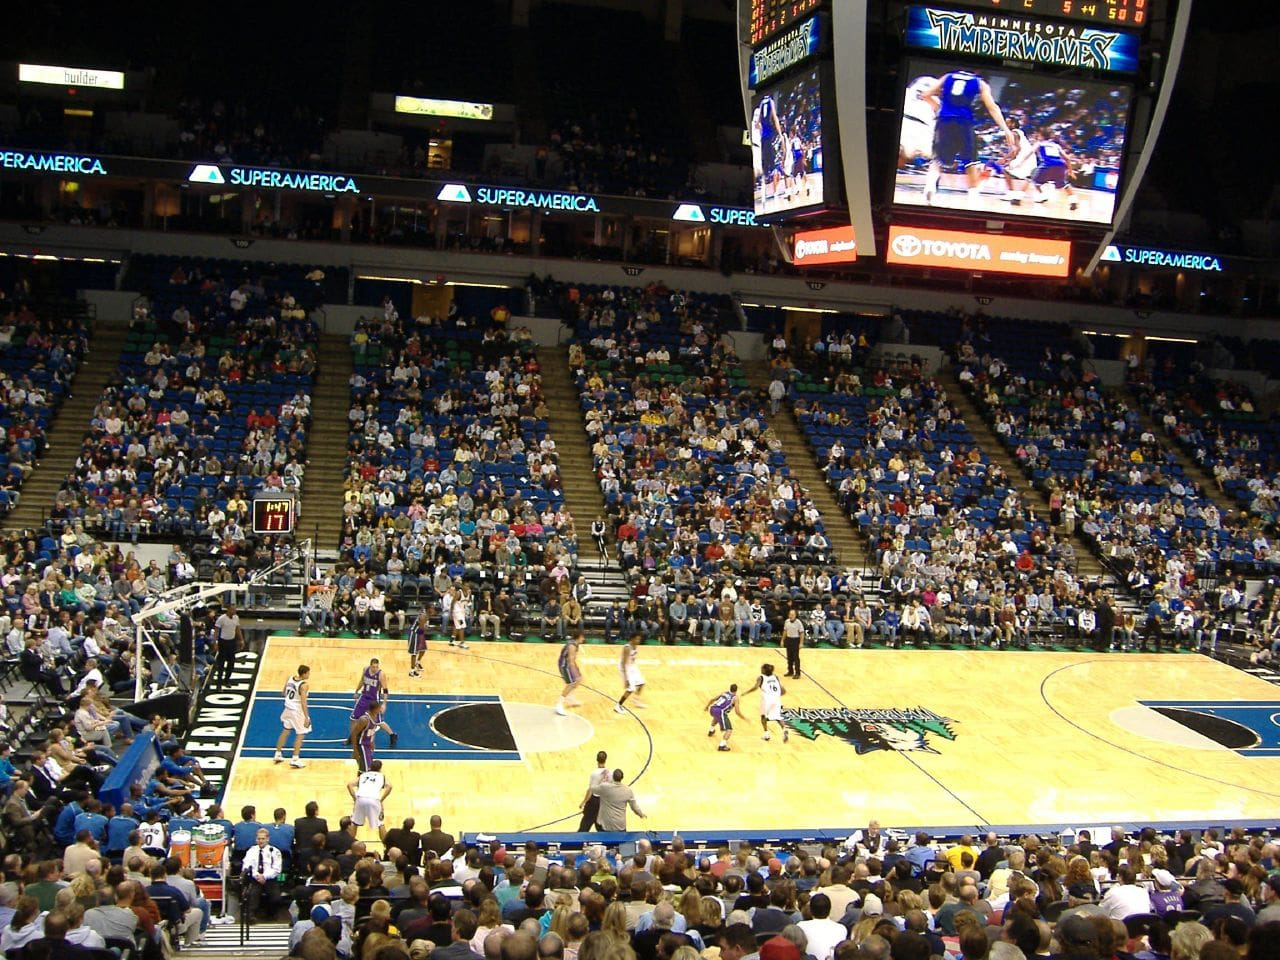 basketball game at the target center in minneapolis